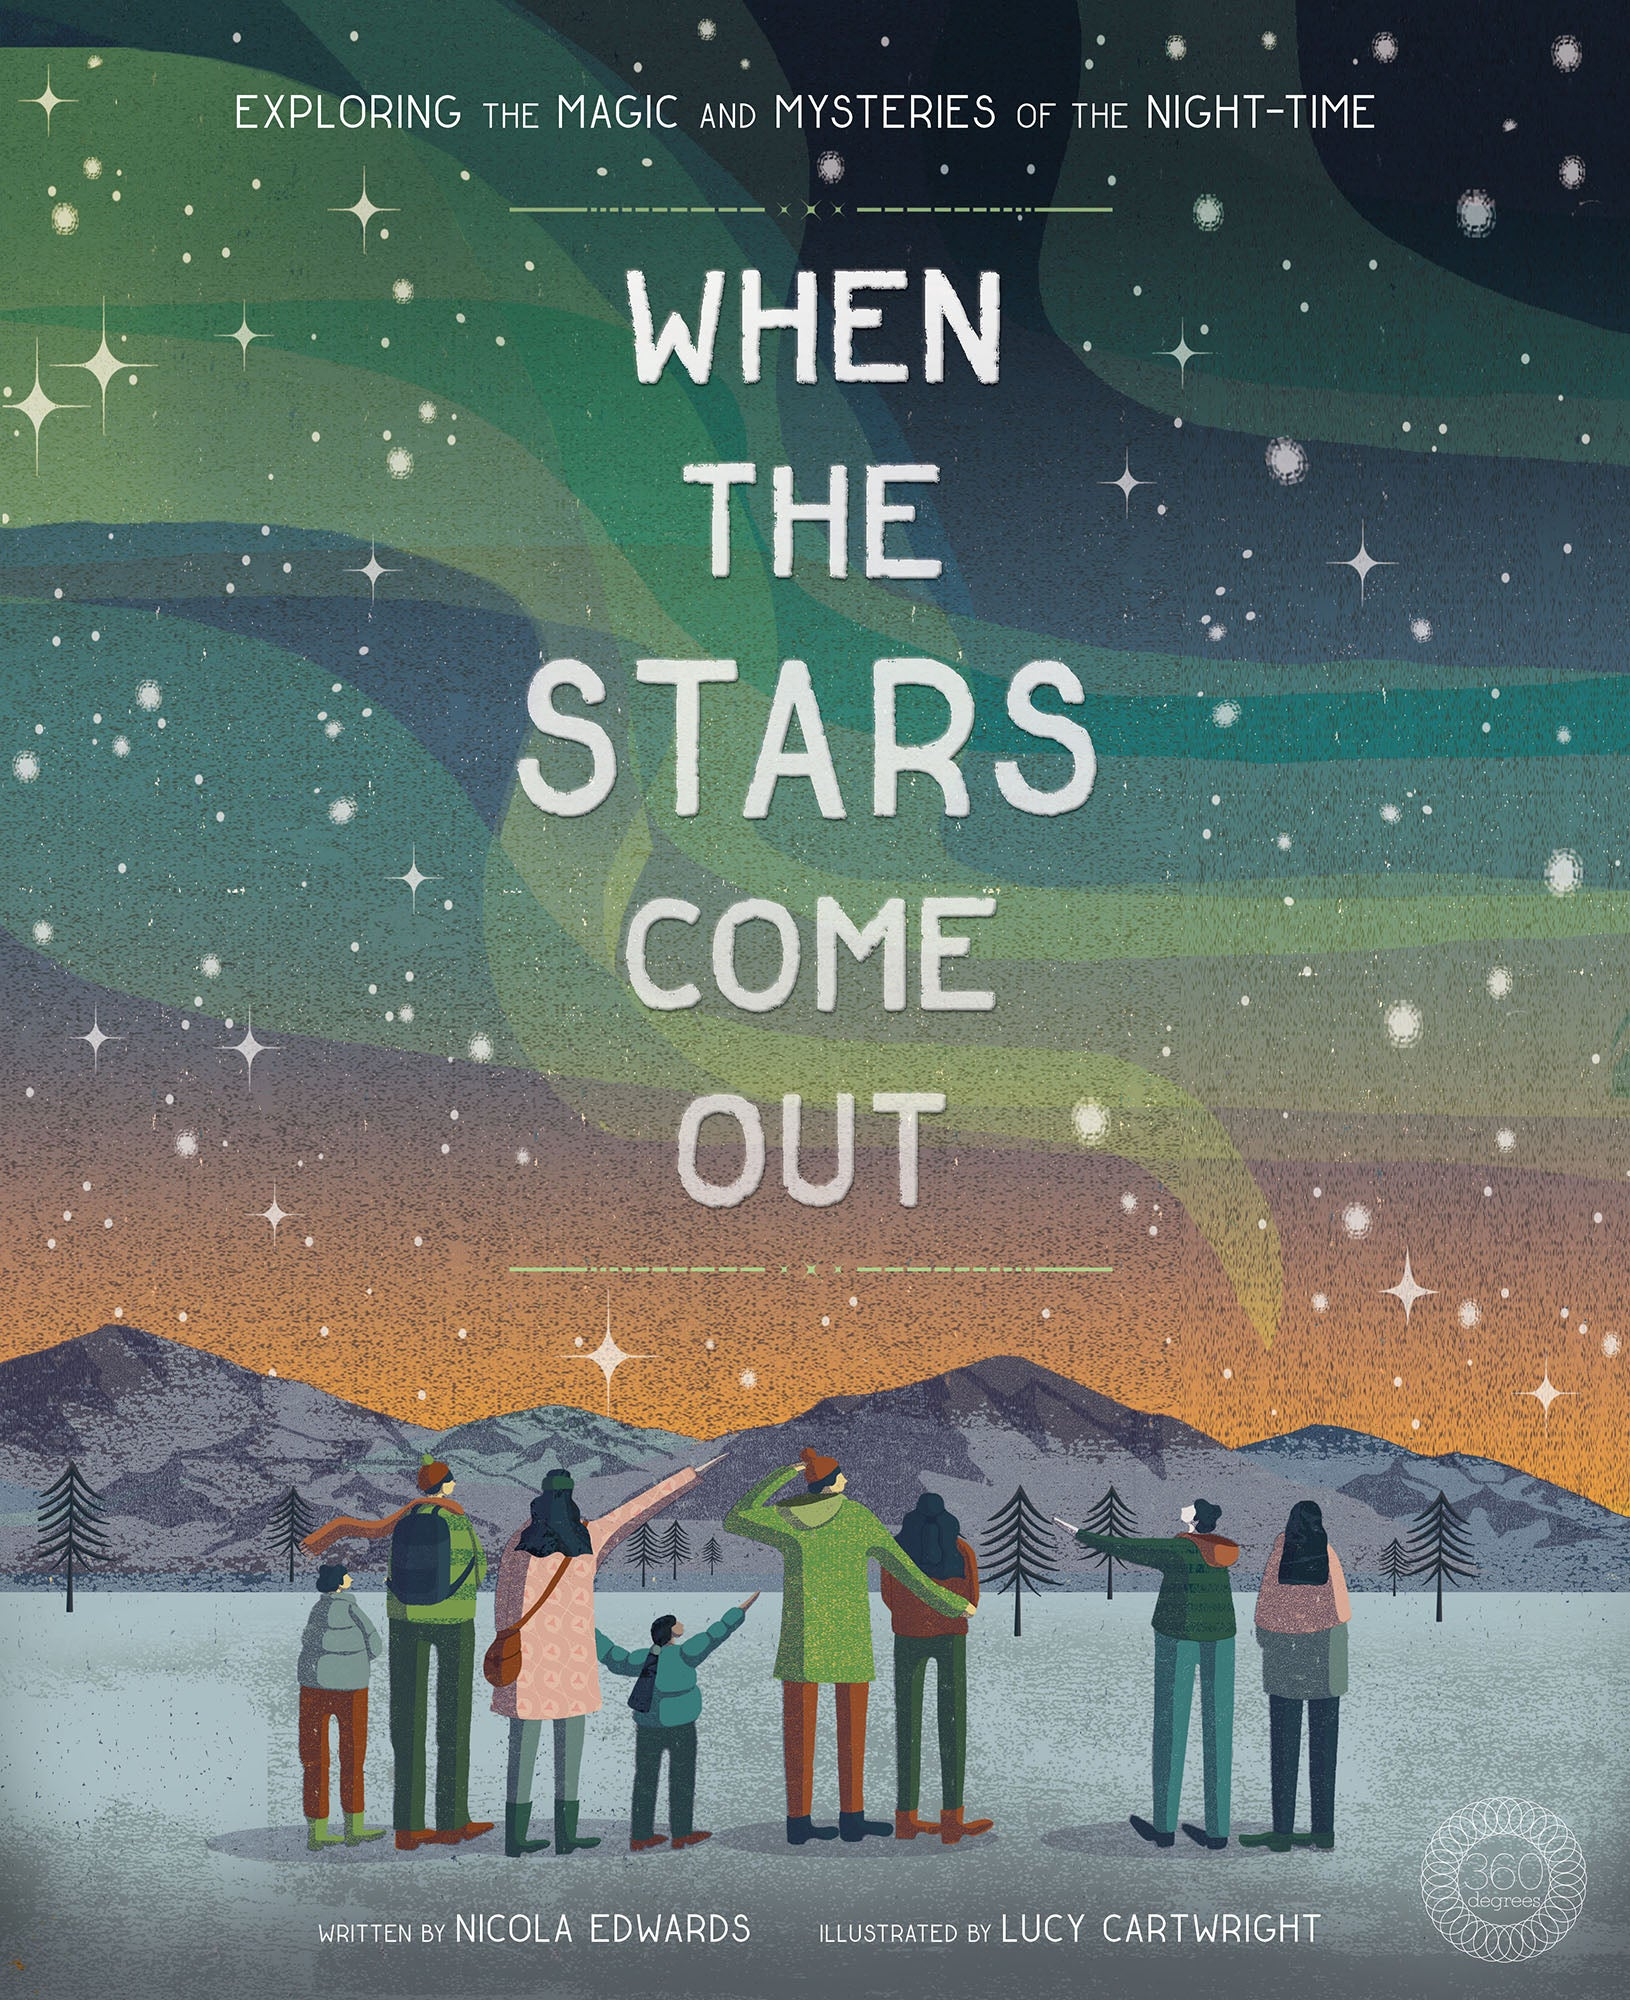 When The Stars Come Out by Nicola Edwards and Lucy Cartwright